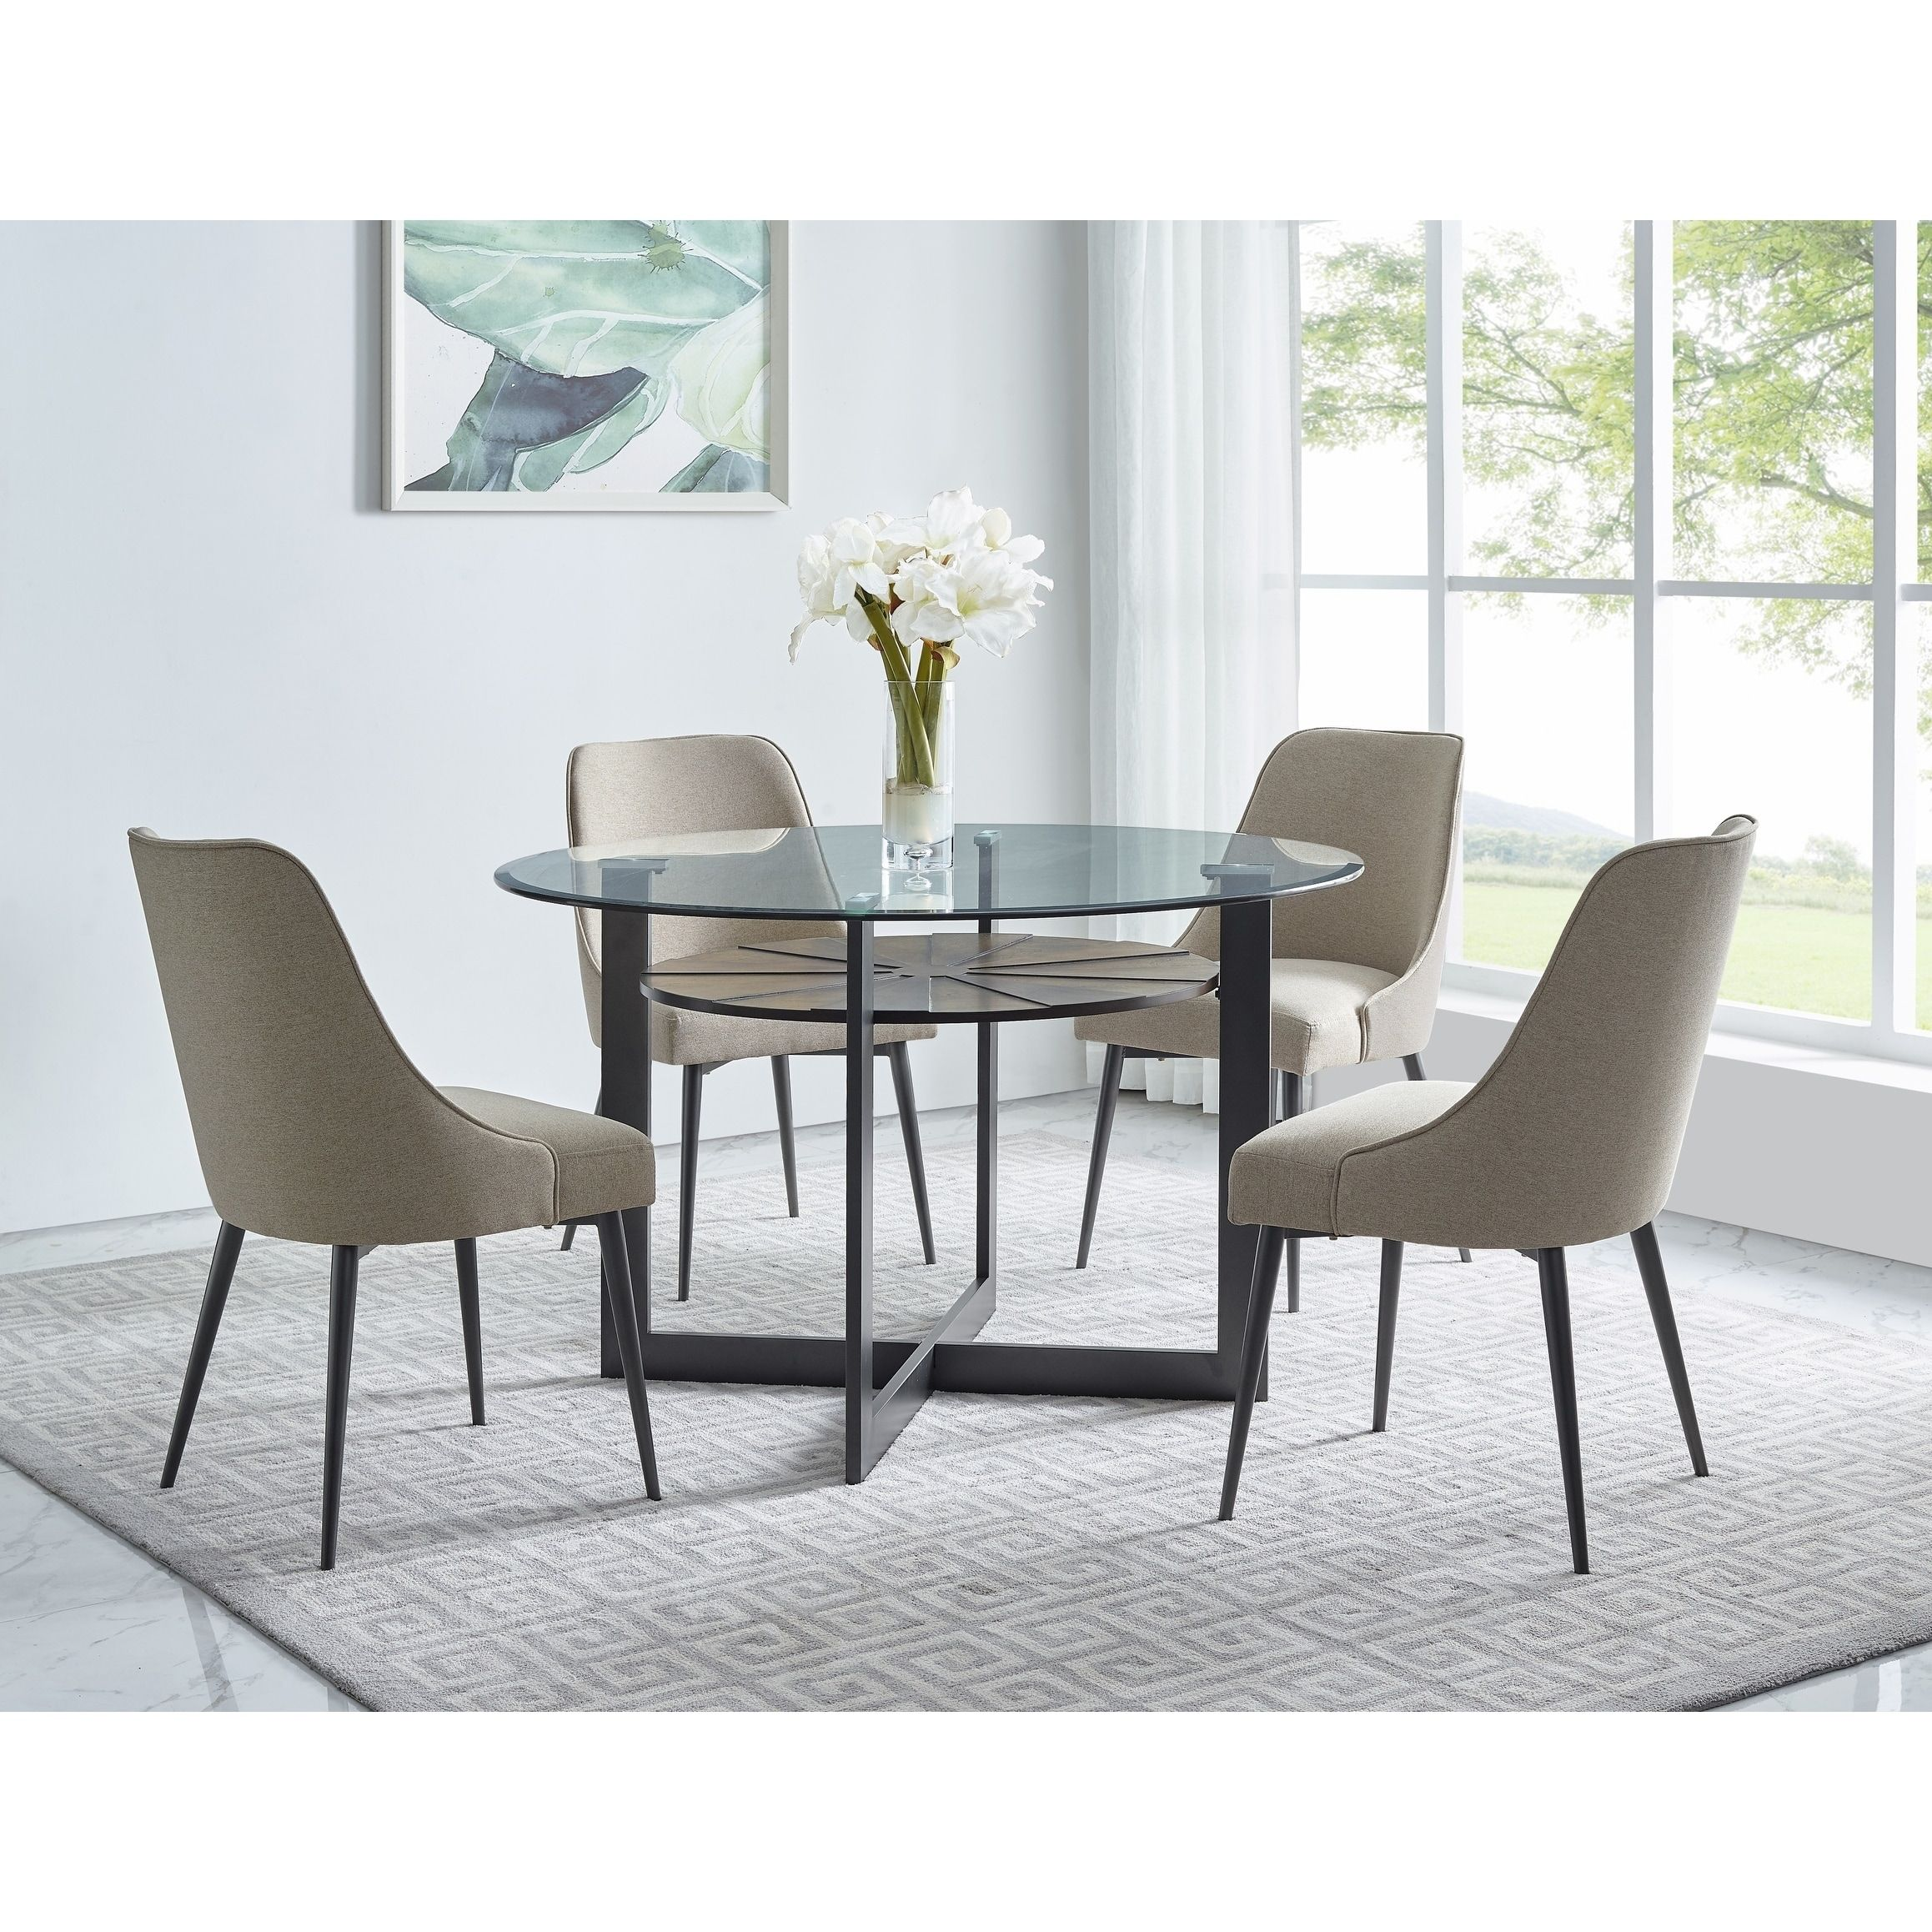 Orrick 48 Inch Round Glass Top Dining Set By Greyson Living Beige Dining Room Sets Dining Set Glass Top Dining